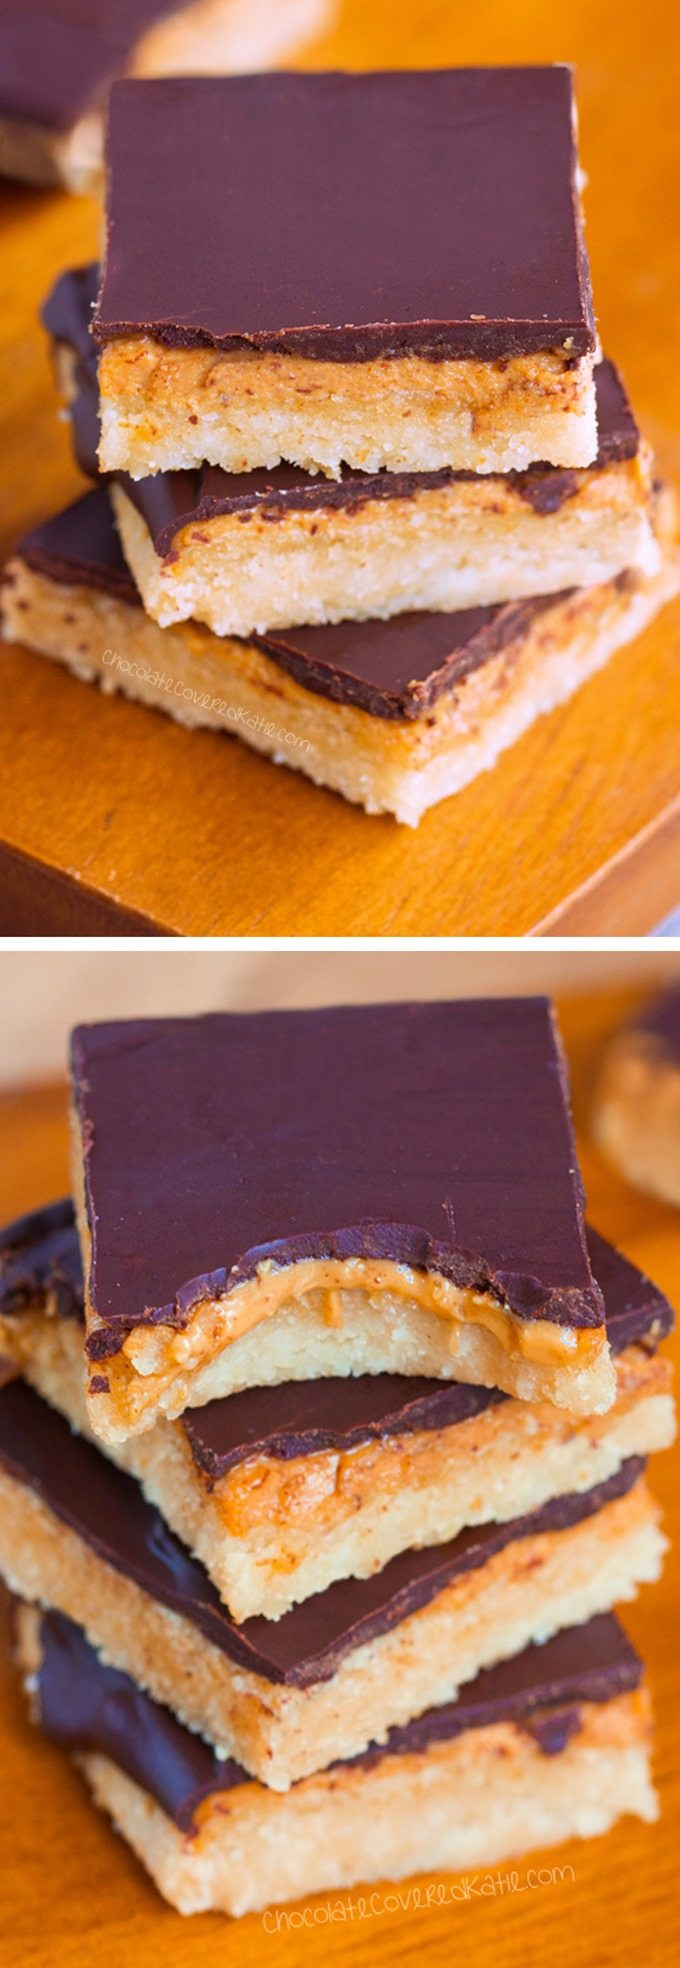 "Creamy peanut butter ""tagalong"" bars - Just like your favorite girl scout cookies, but WAY better because they are bars instead of cookies! @choccoveredkt http://chocolatecoveredkatie.com/"